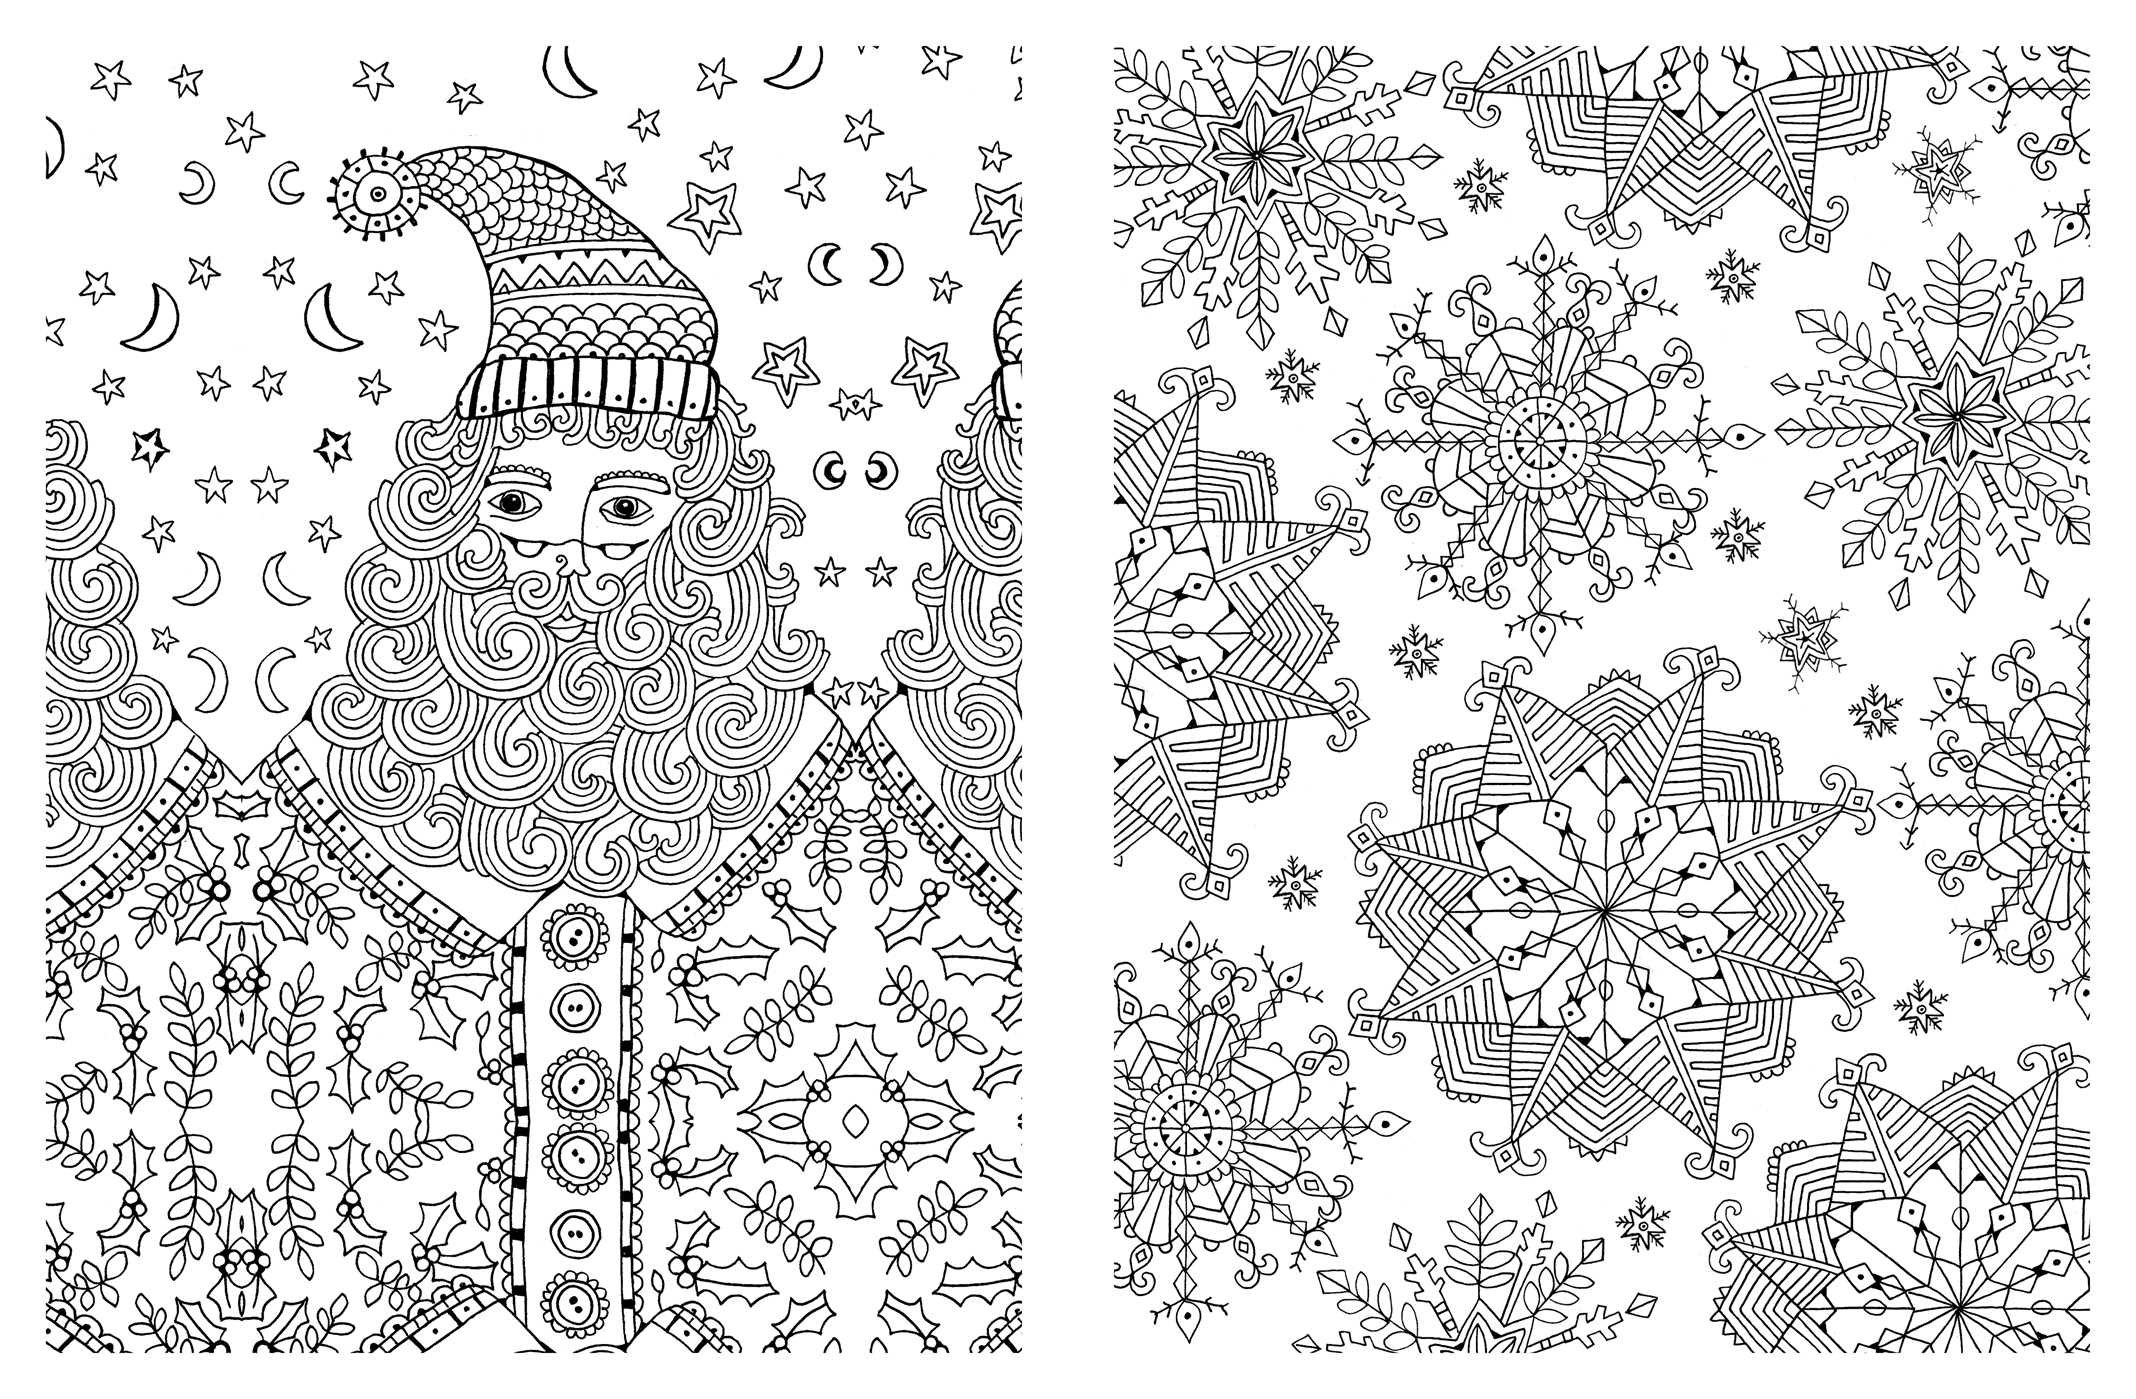 Amazon.com: Posh Adult Coloring Book: Christmas Designs for Fun ...